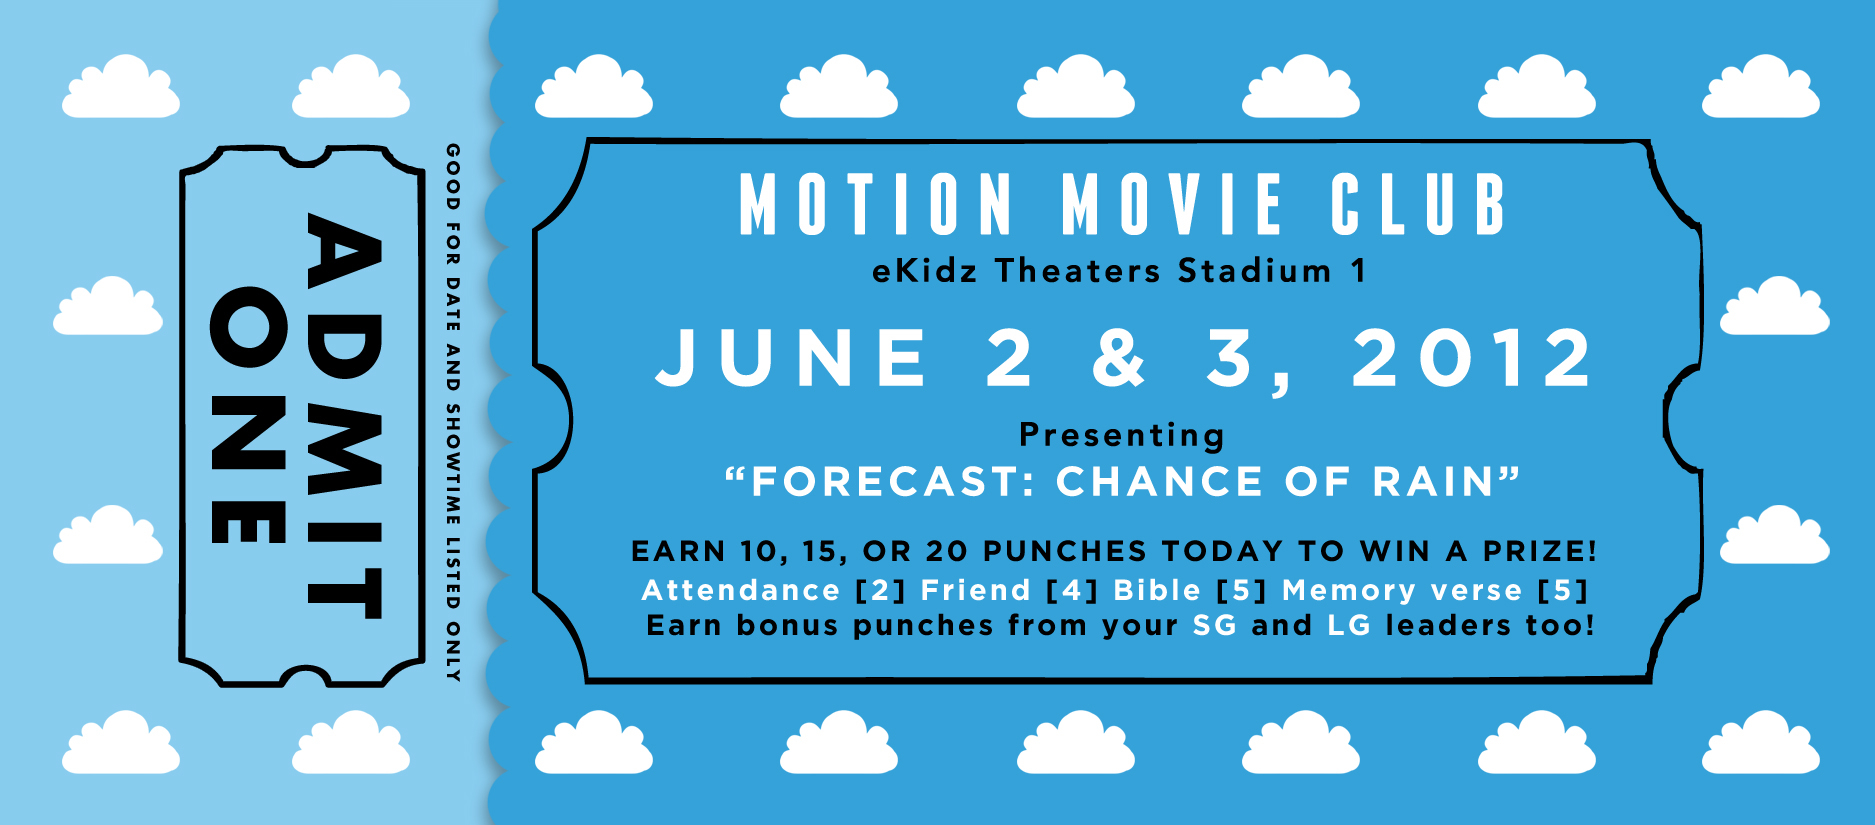 Kids will earn punches on their movie tickets each weekend to win a ...